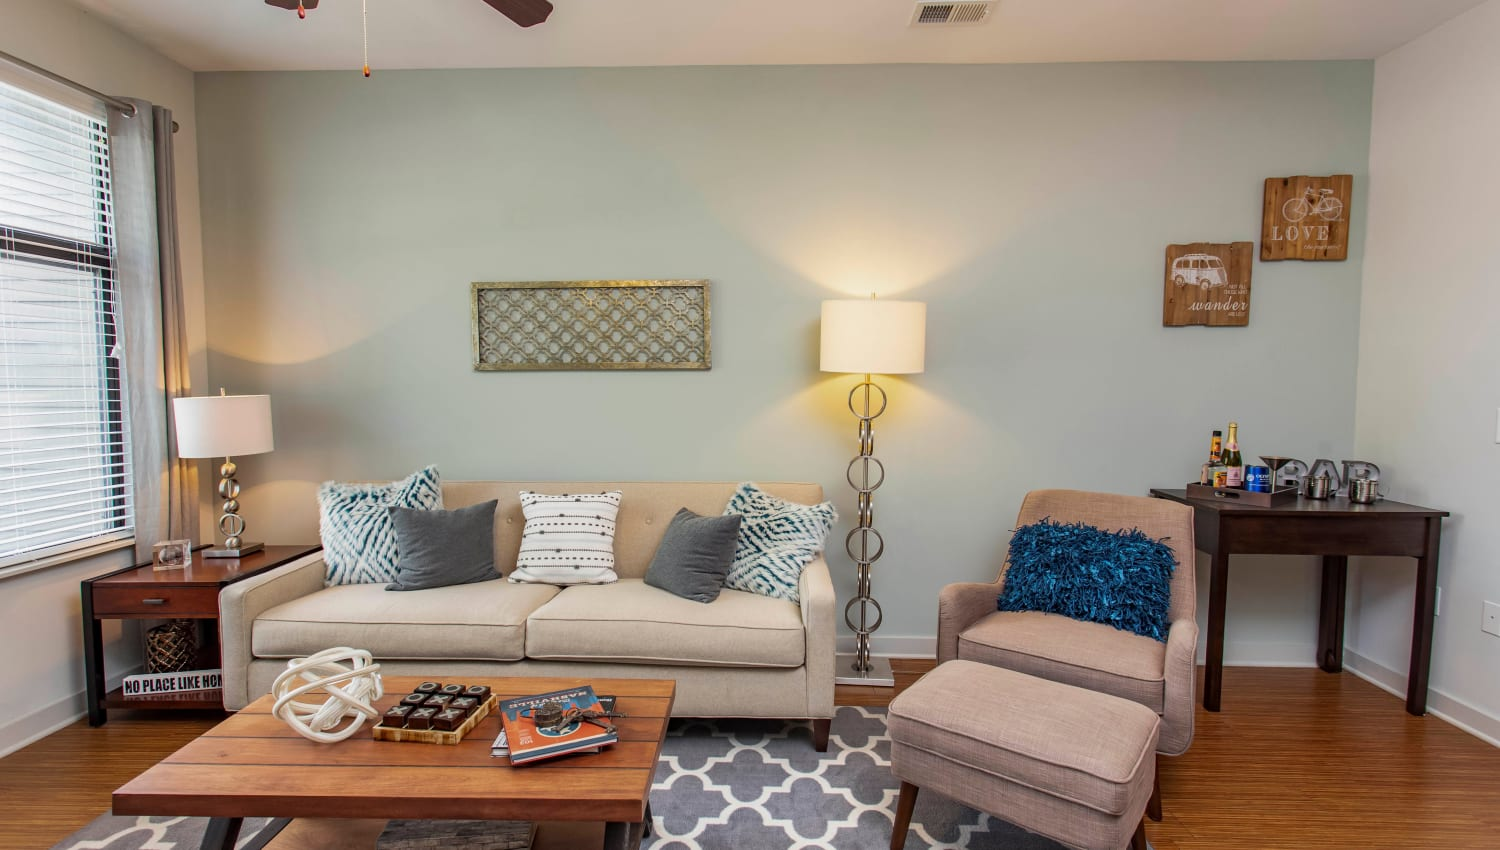 Accent wall and comfortable furnishings in a model apartment's living area at Olympus Midtown in Nashville, Tennessee